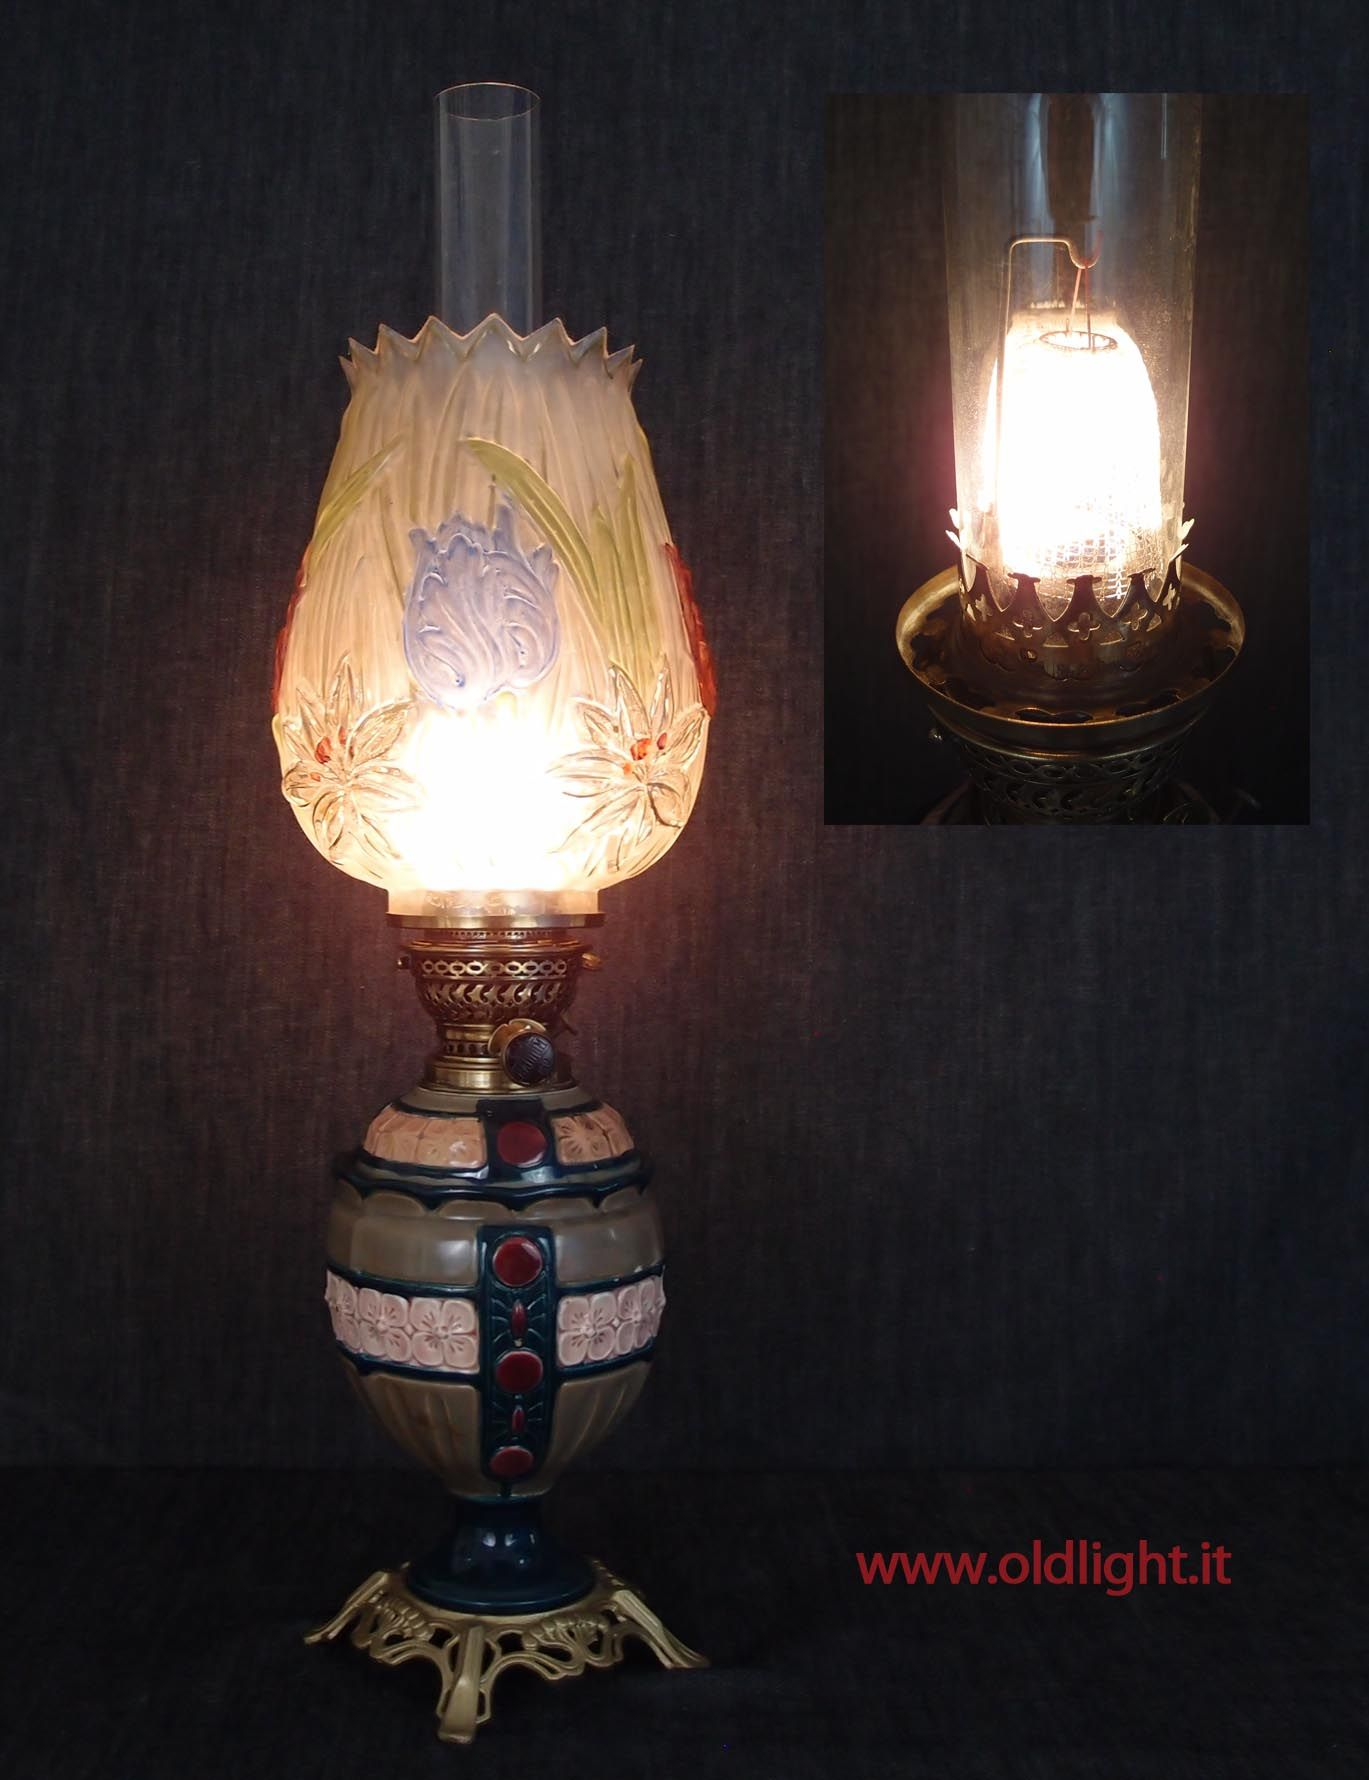 Natural Oil Lamp Decorations. Gallery Of Pedestrian Street Lamp Road ... for natural oil lamp decorations  55dqh